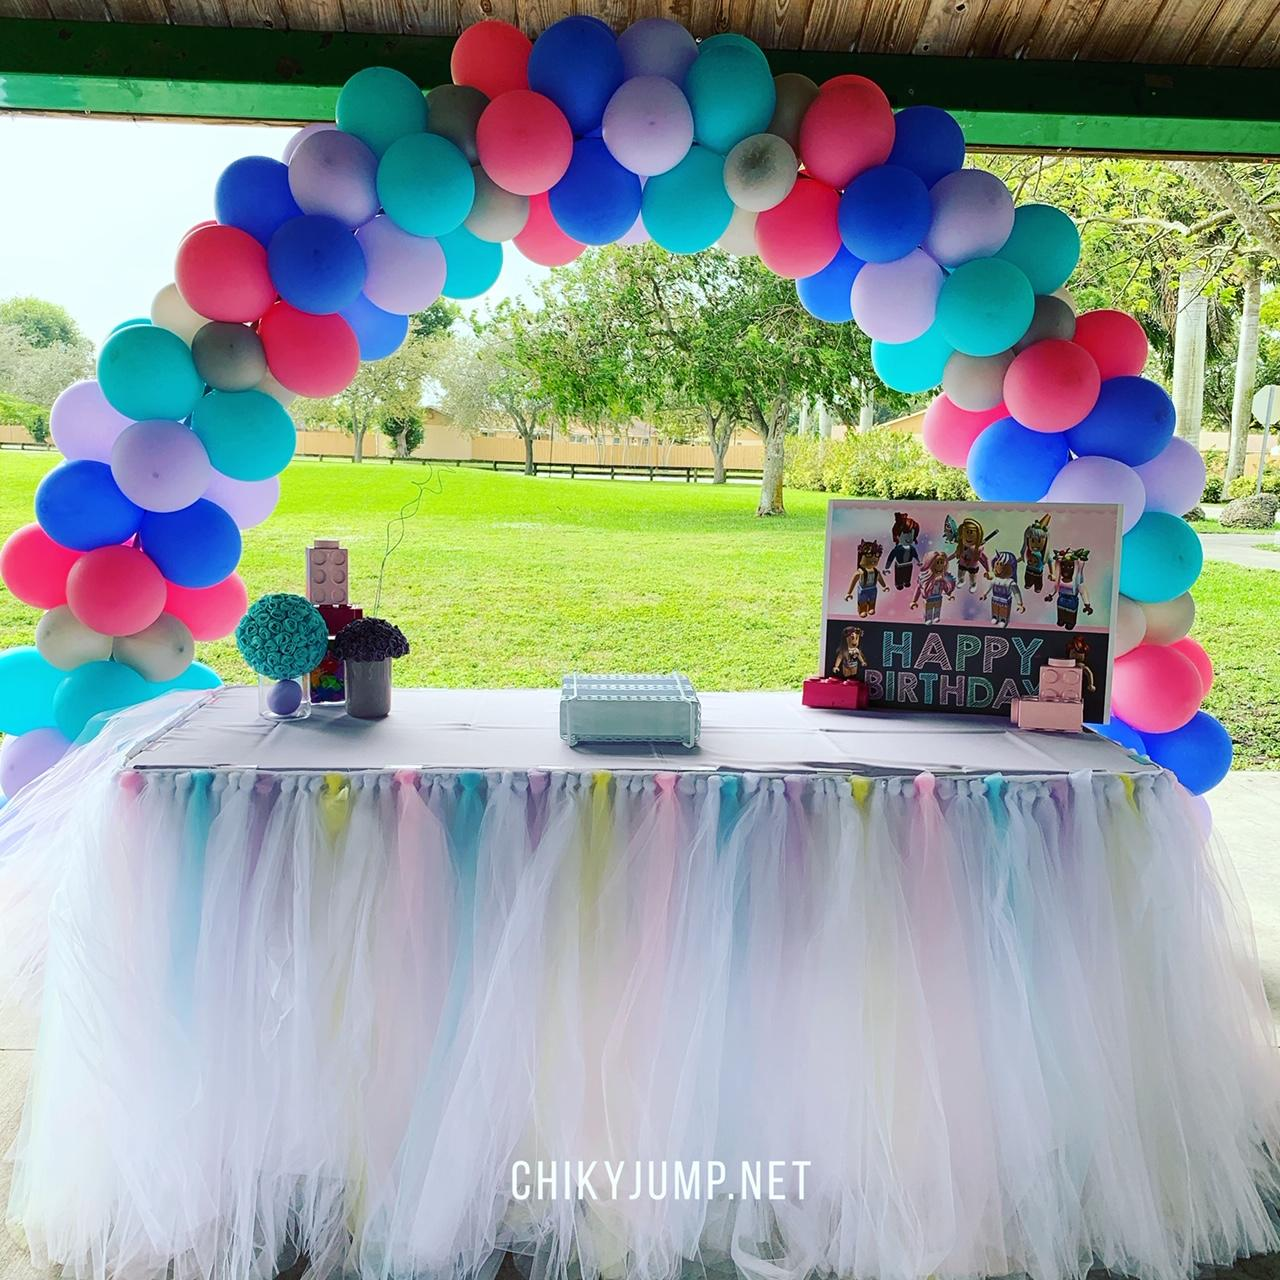 Archballoon and Table Cake with Tutu Skirt, Party Decorations